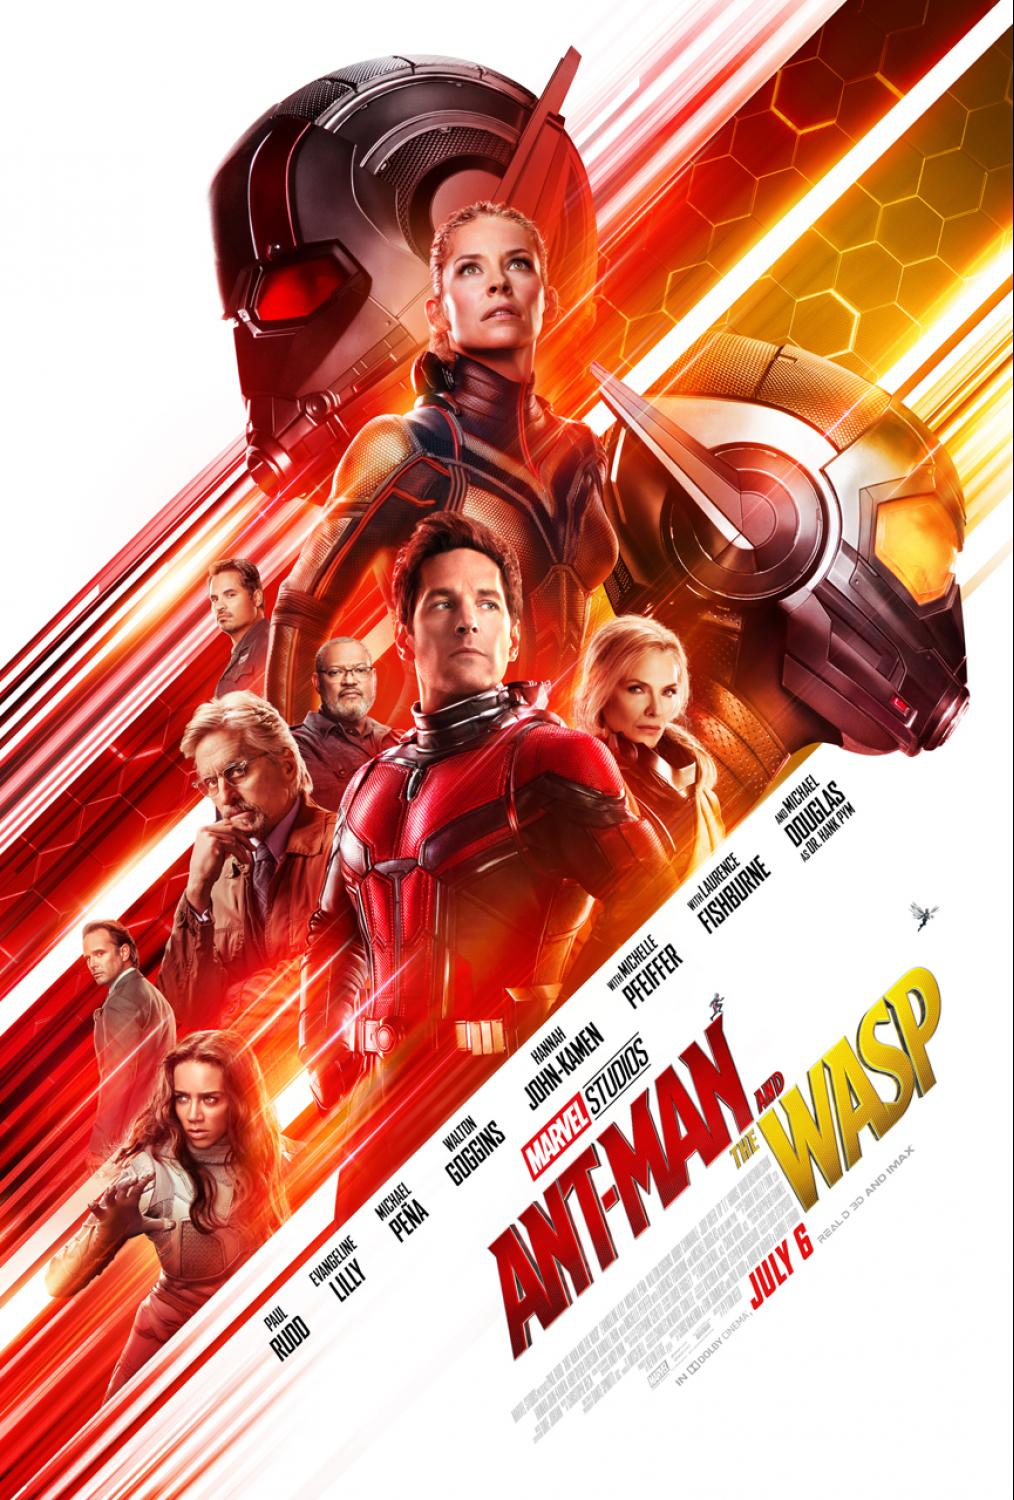 Sitting Down with Ant-Man and the Wasp Director Peyton Reed - We talked about the film, what the future holds, and the credit scenes.